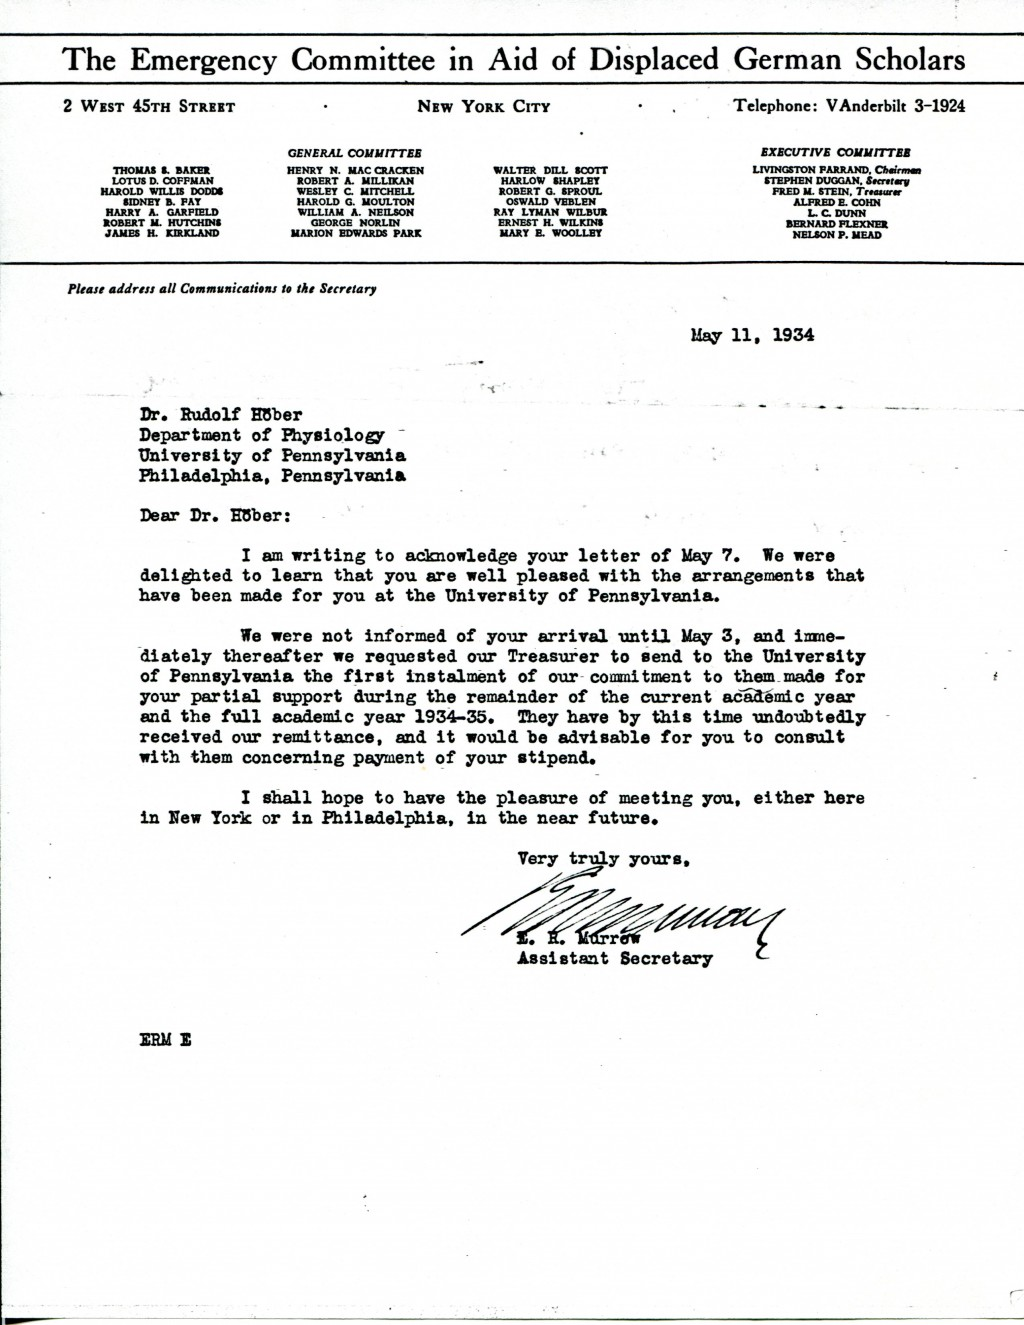 007 Cornell Essay Example Uofpenn Murrow Ltr May Stupendous Mba Examples Engineering Essays That Worked Large